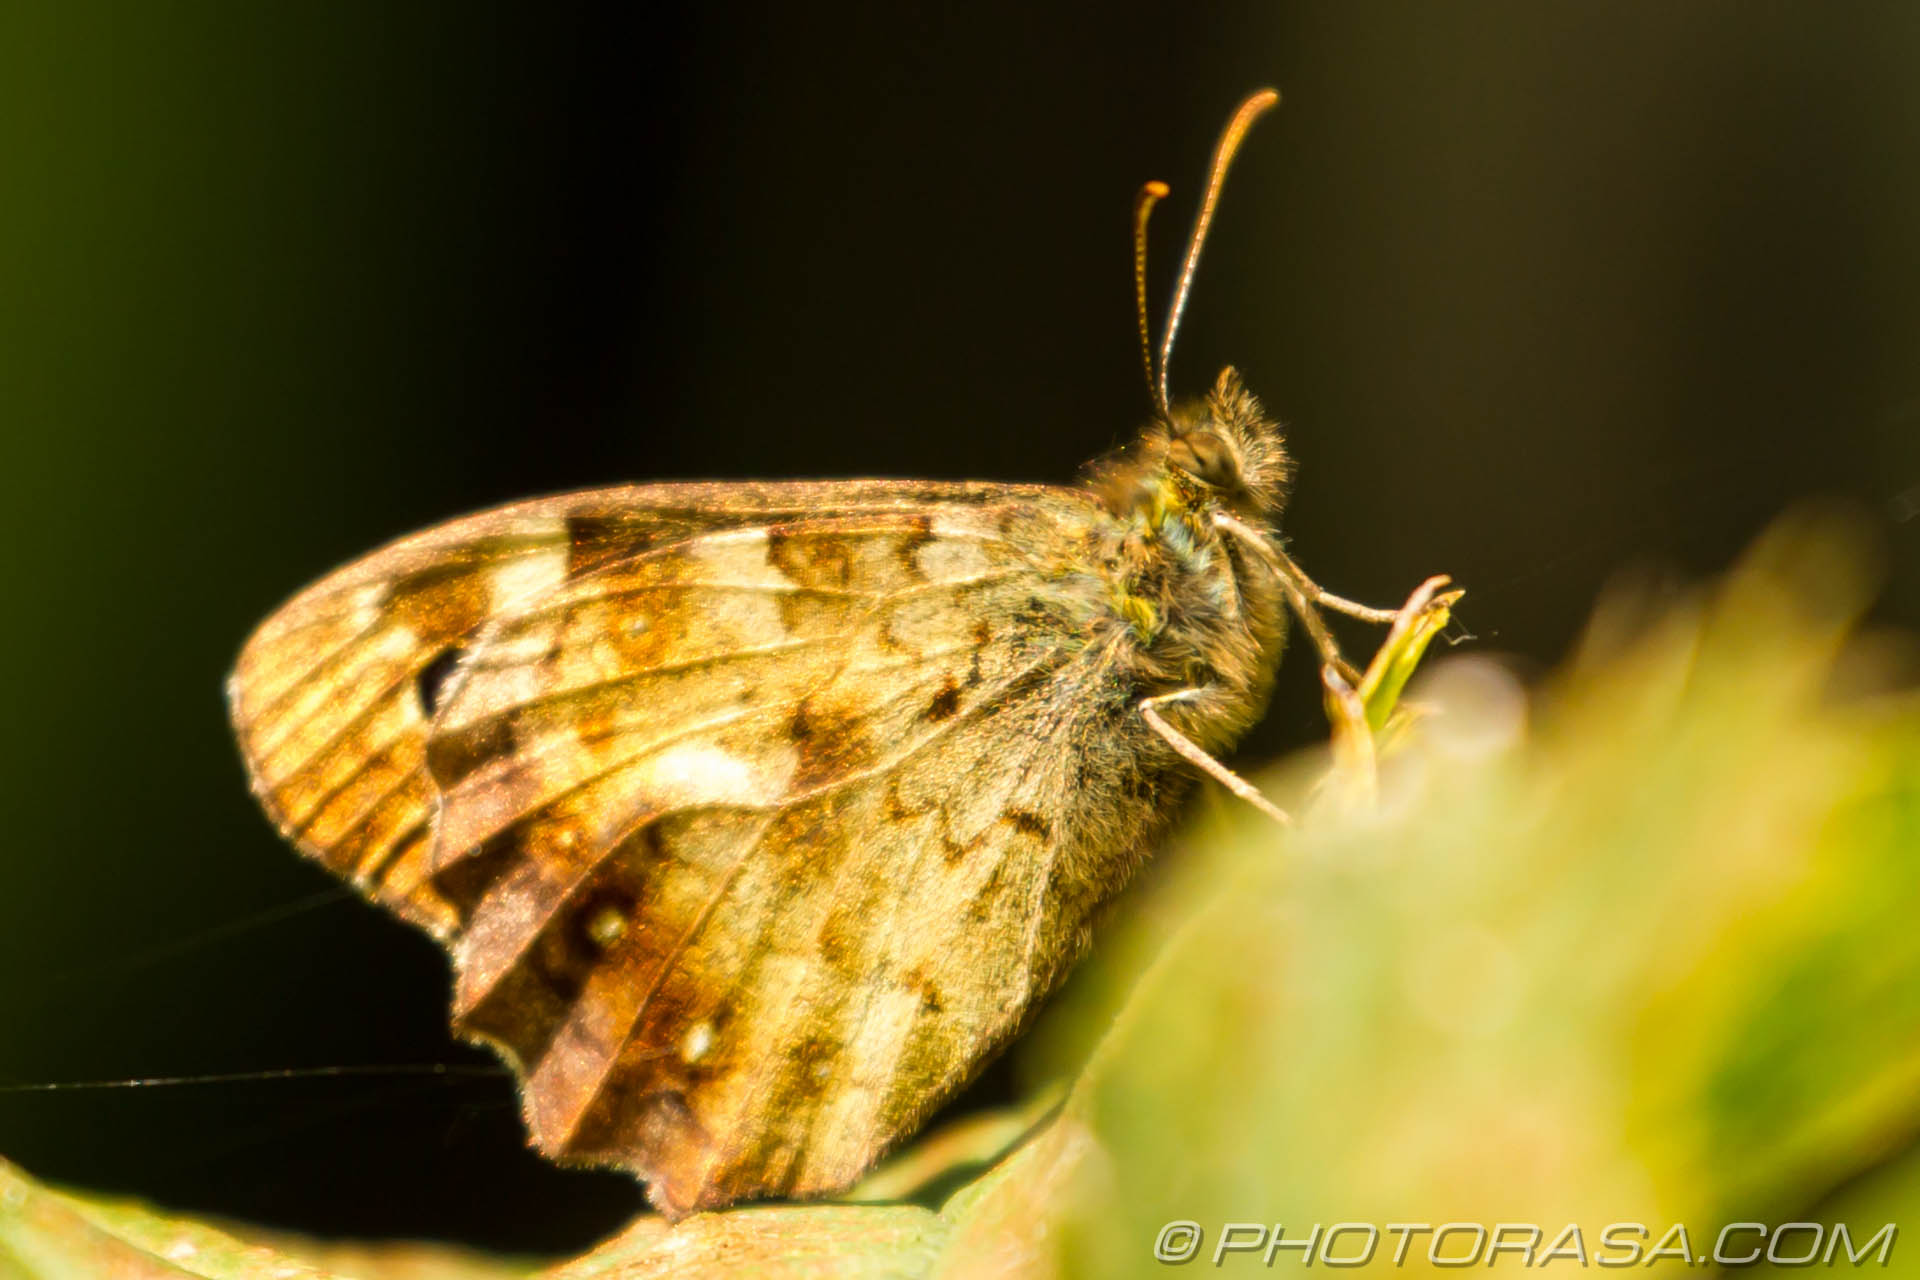 https://photorasa.com/speckled-wood-butterfly/speakled-wood-underside/